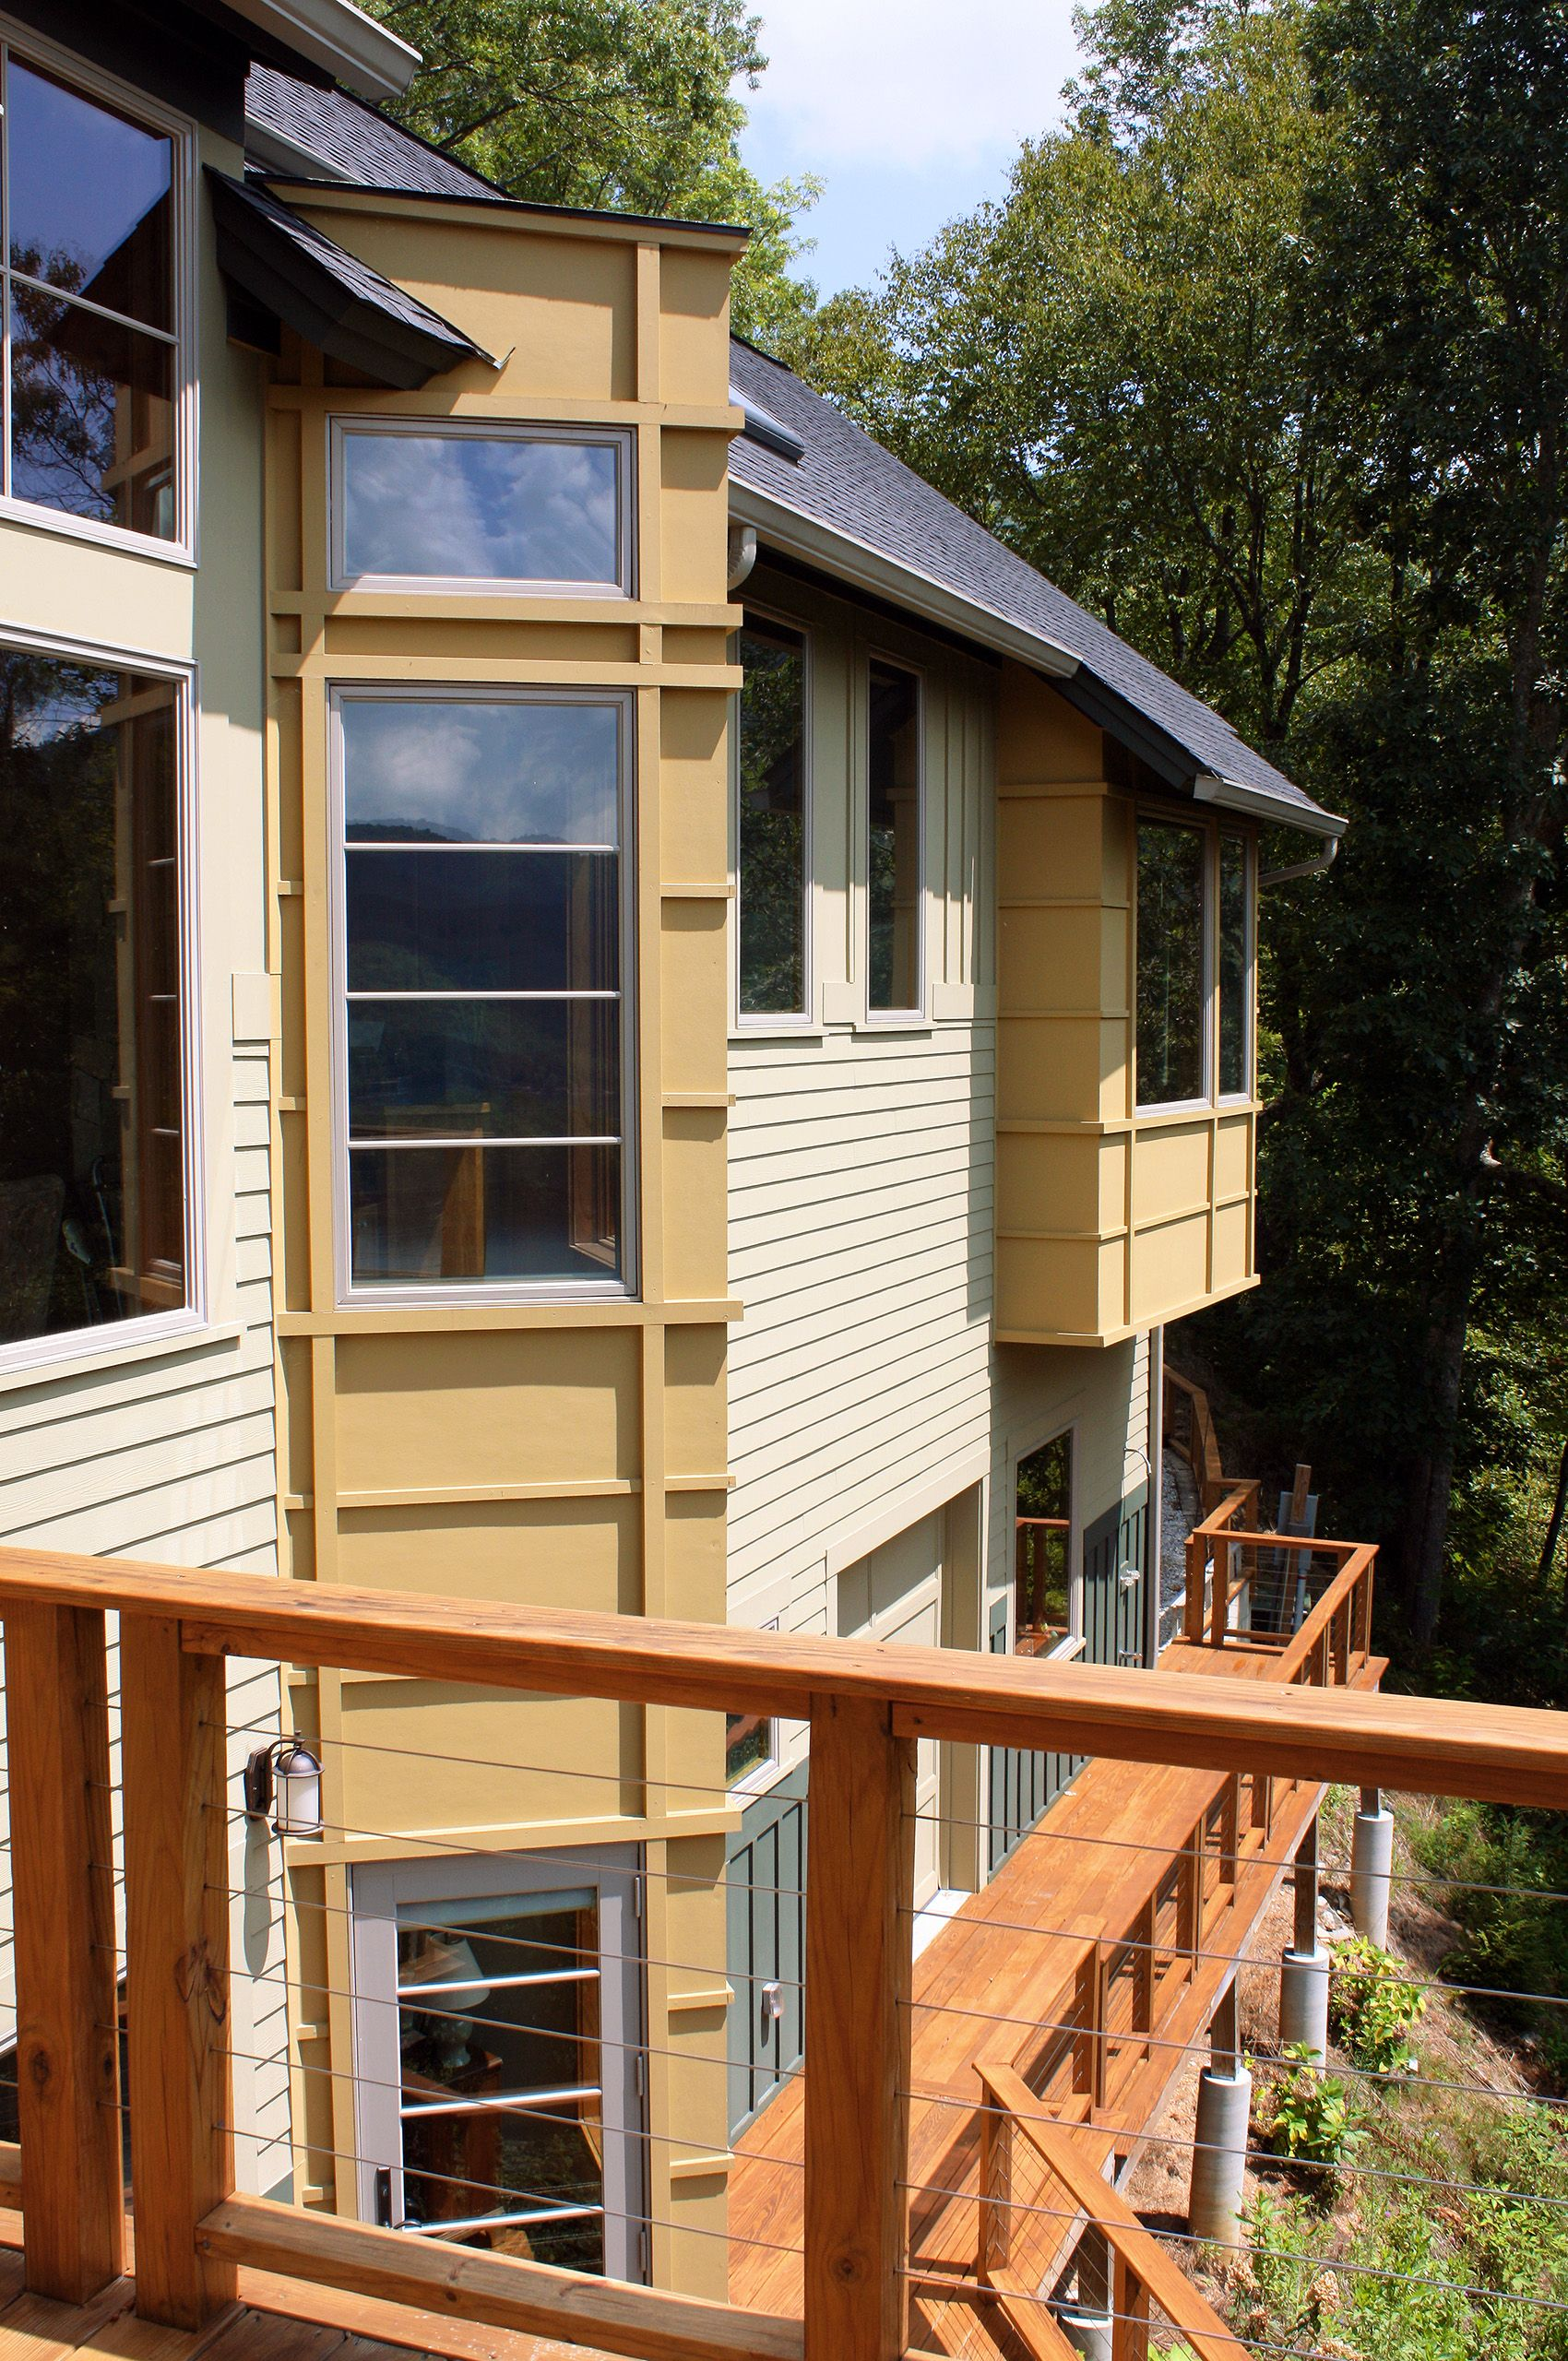 MountainRetreat-Lake Nantahala-NorthCarolina-UpperDeck.jpg